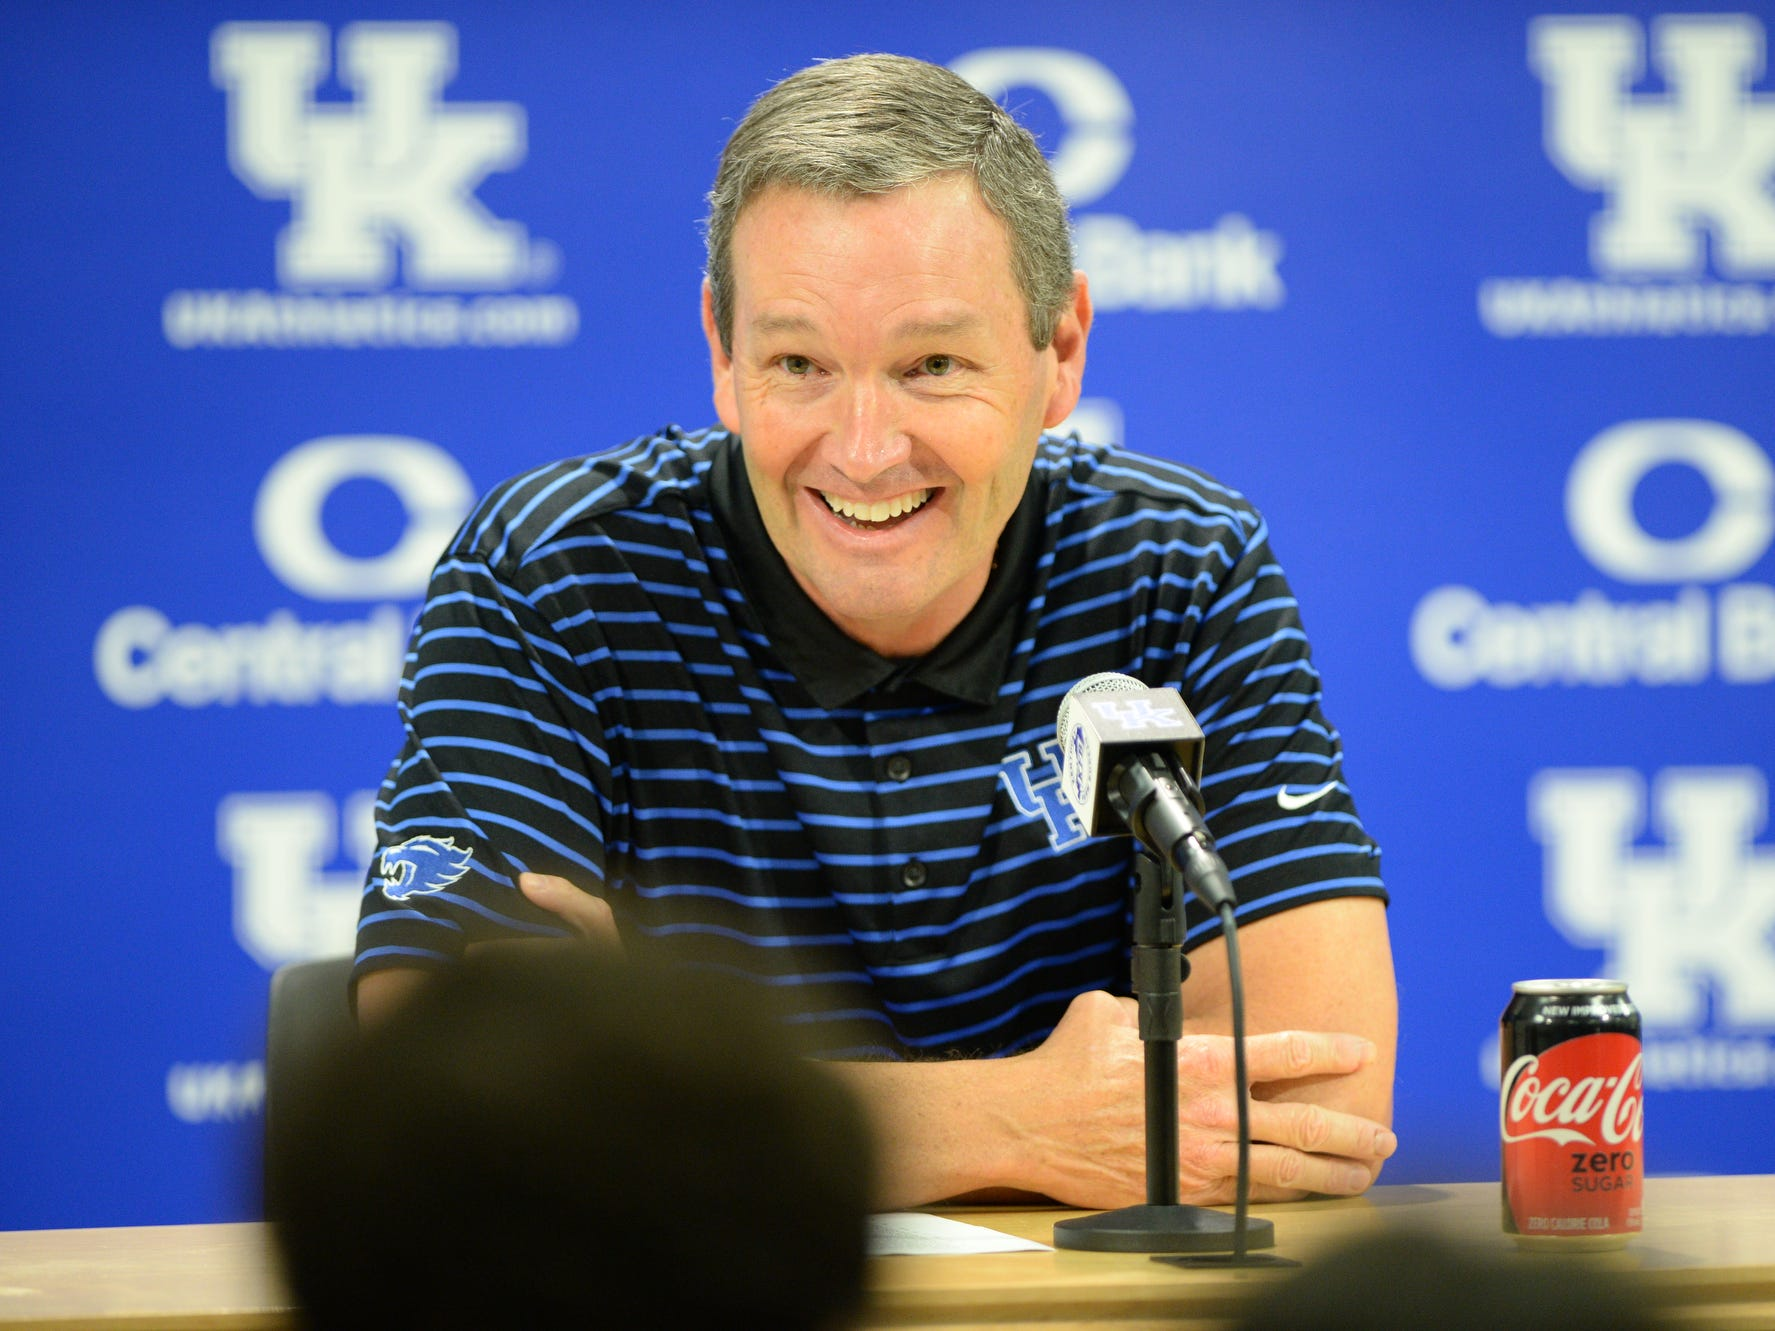 Athletic Director Mitch Barnhart holds a press conference during the UK football media day at Kroger Filed in Lexington, Kentucky on Friday, August 3, 2018.